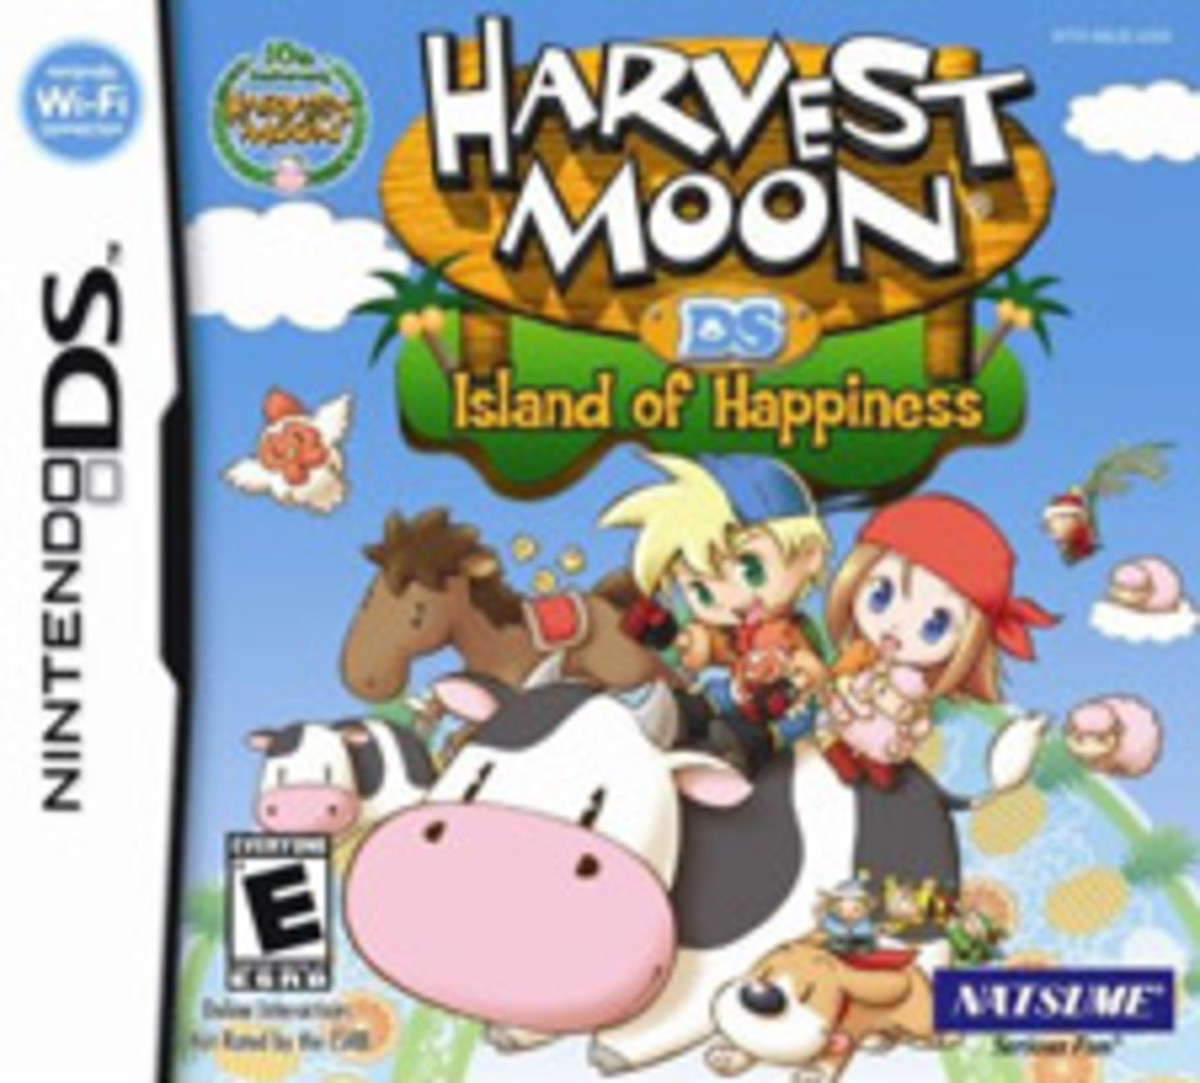 Bachelors and Bachelorettes in Harvest Moon DS: Island of Happiness